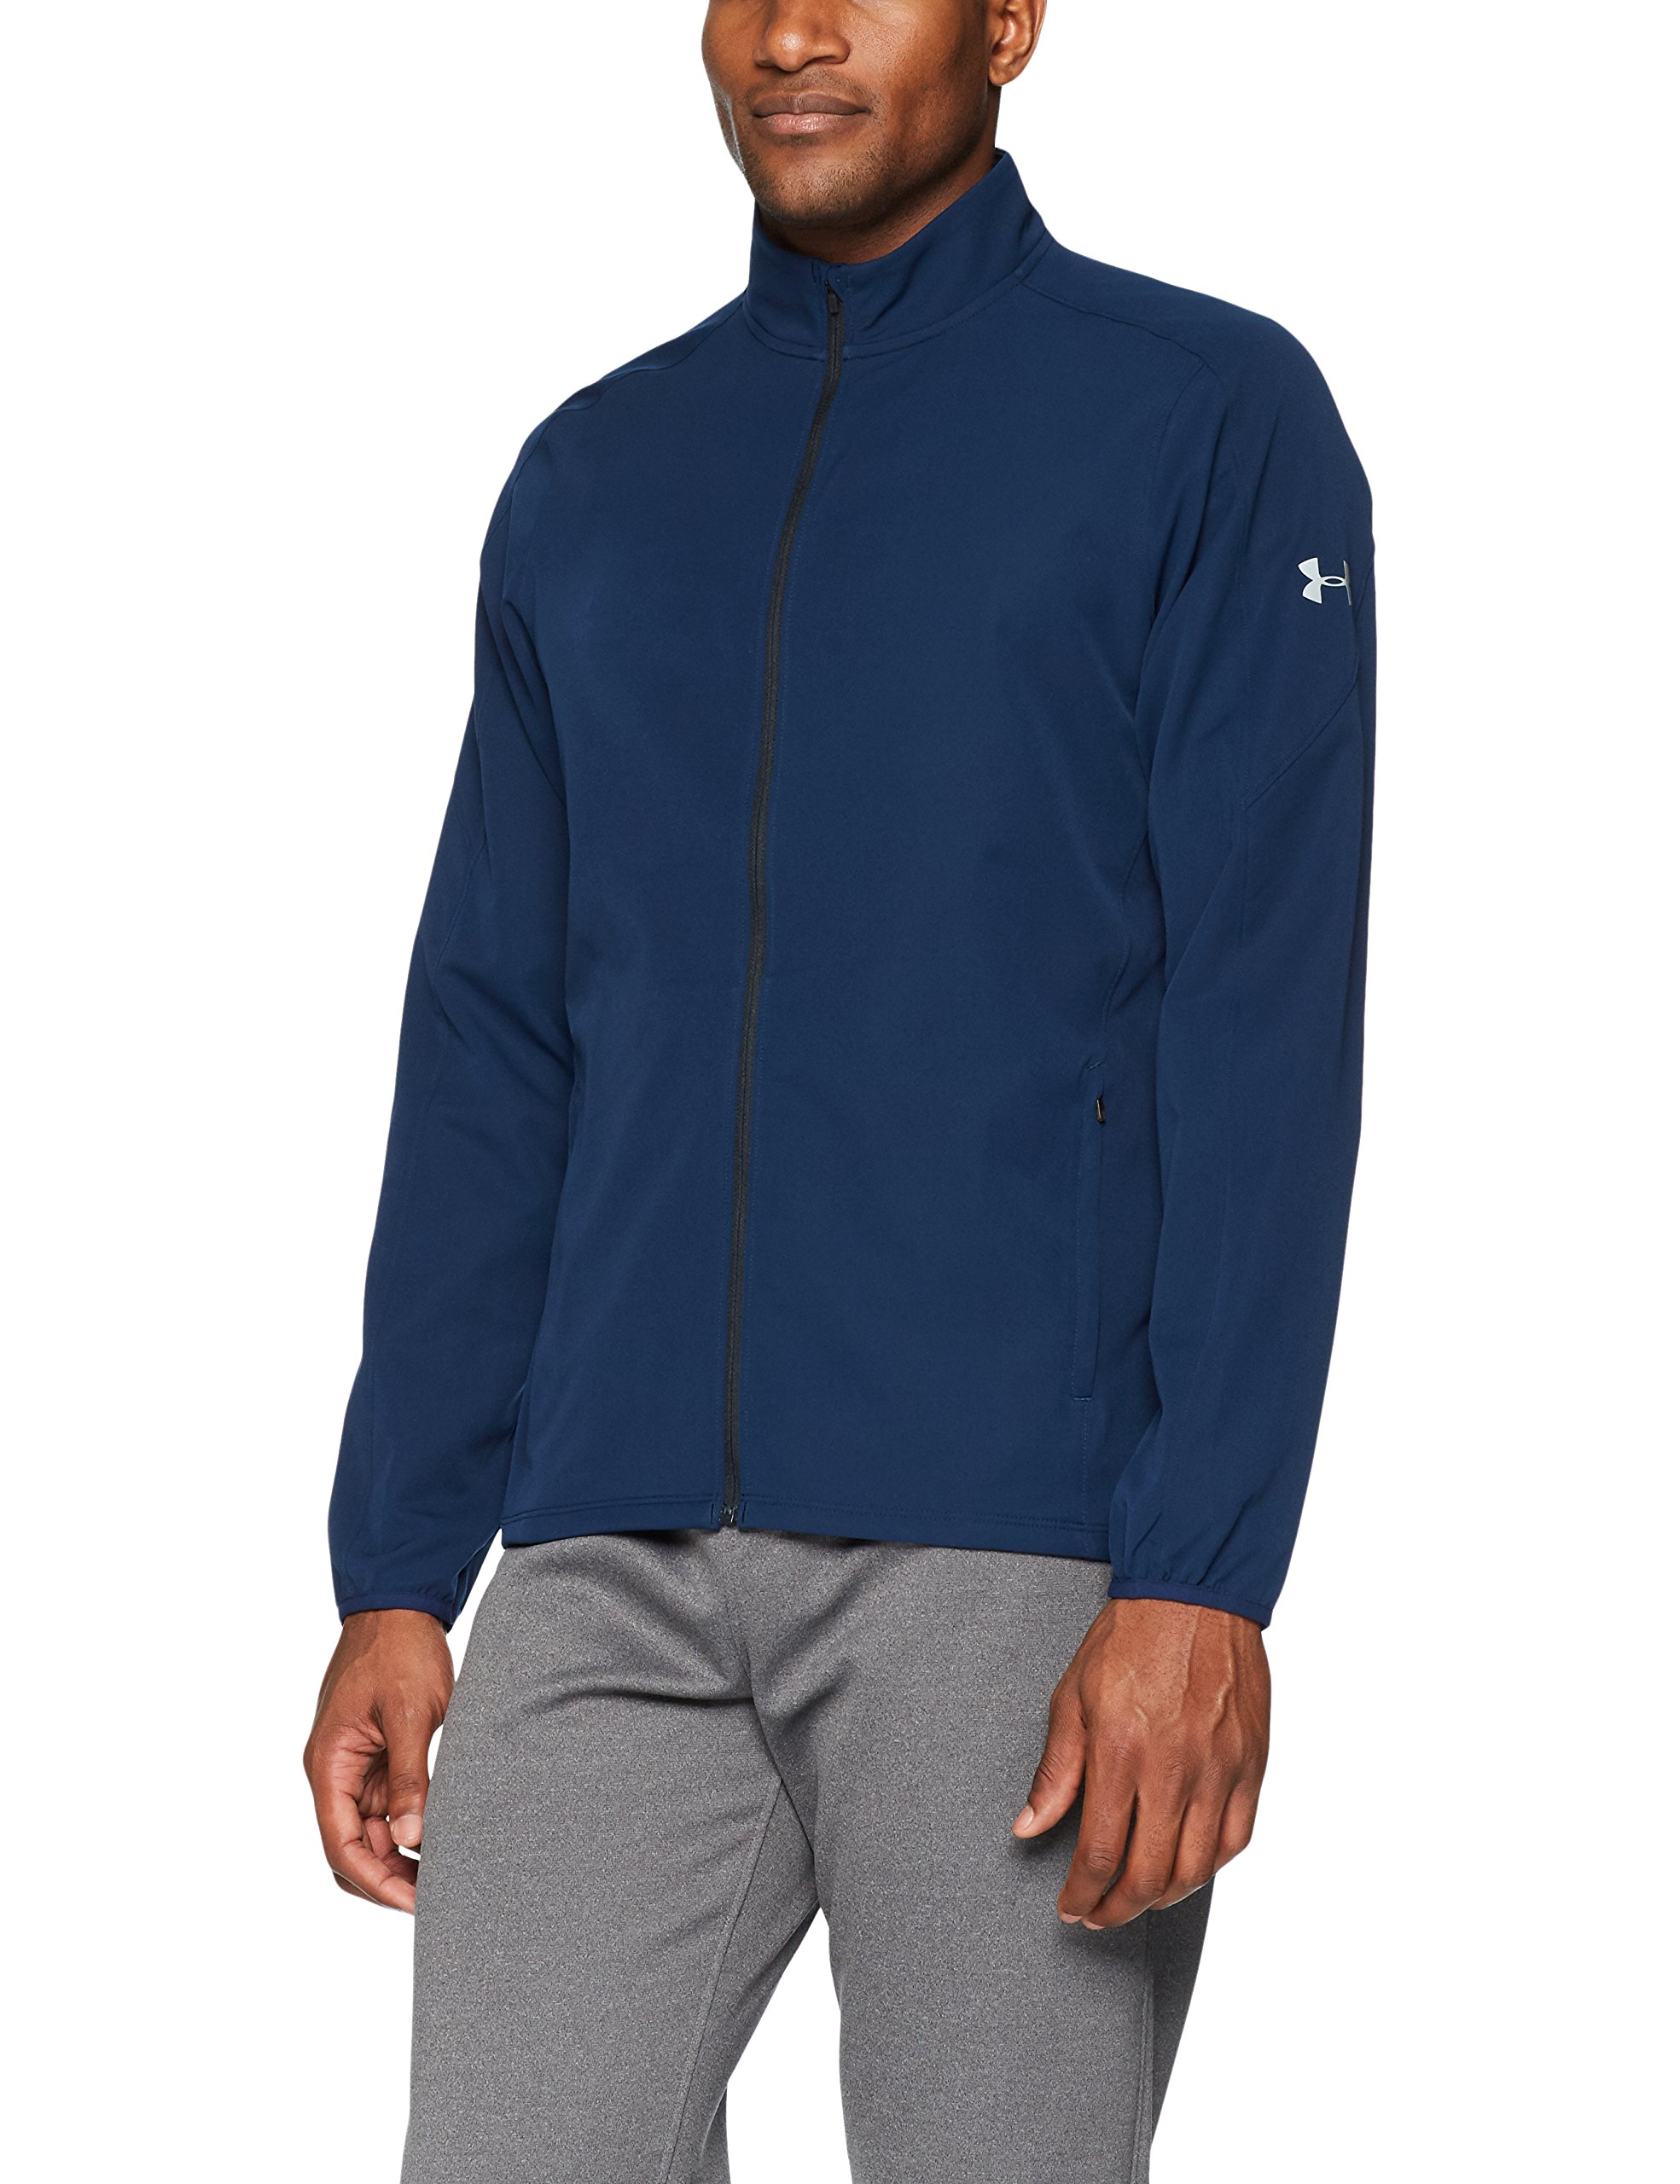 Under Armour Men's Storm Out & Back Jacket, Academy (408)/Reflective, Medium by Under Armour